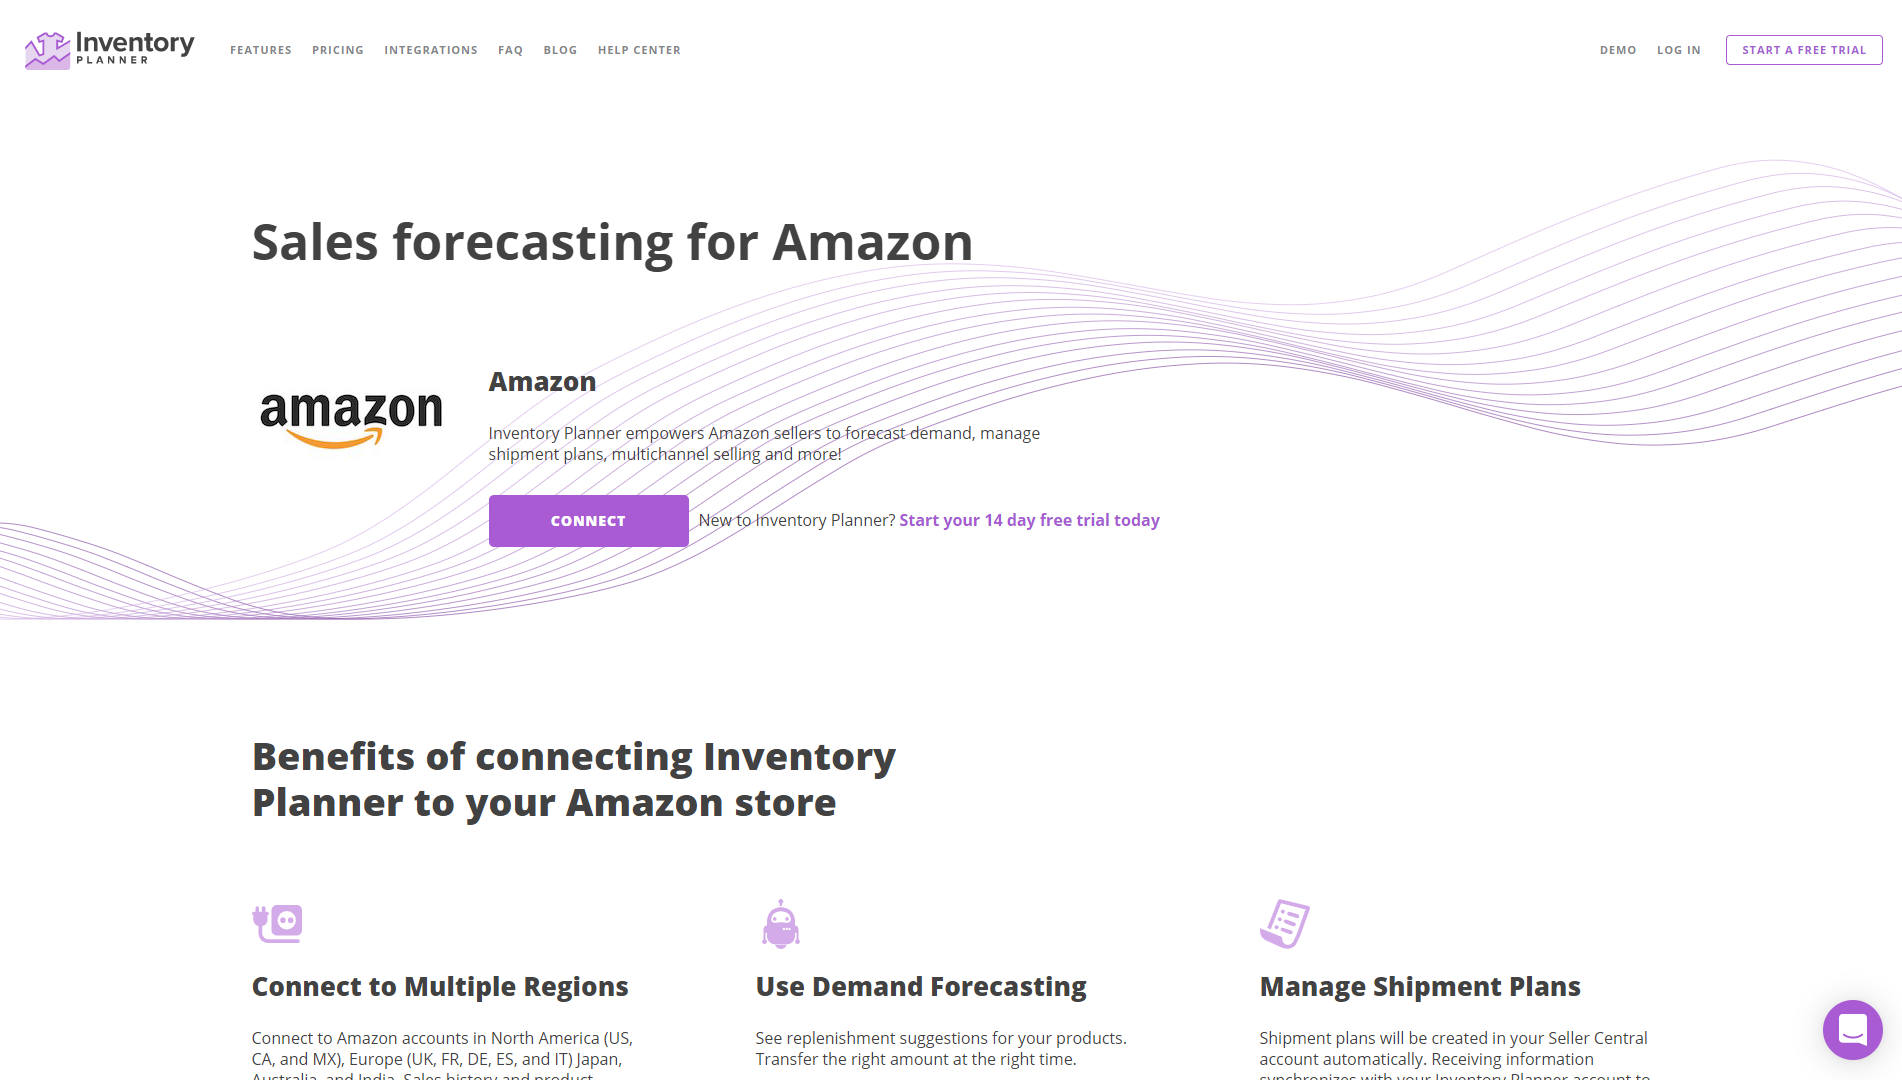 Inventory Planner landing page screenshot